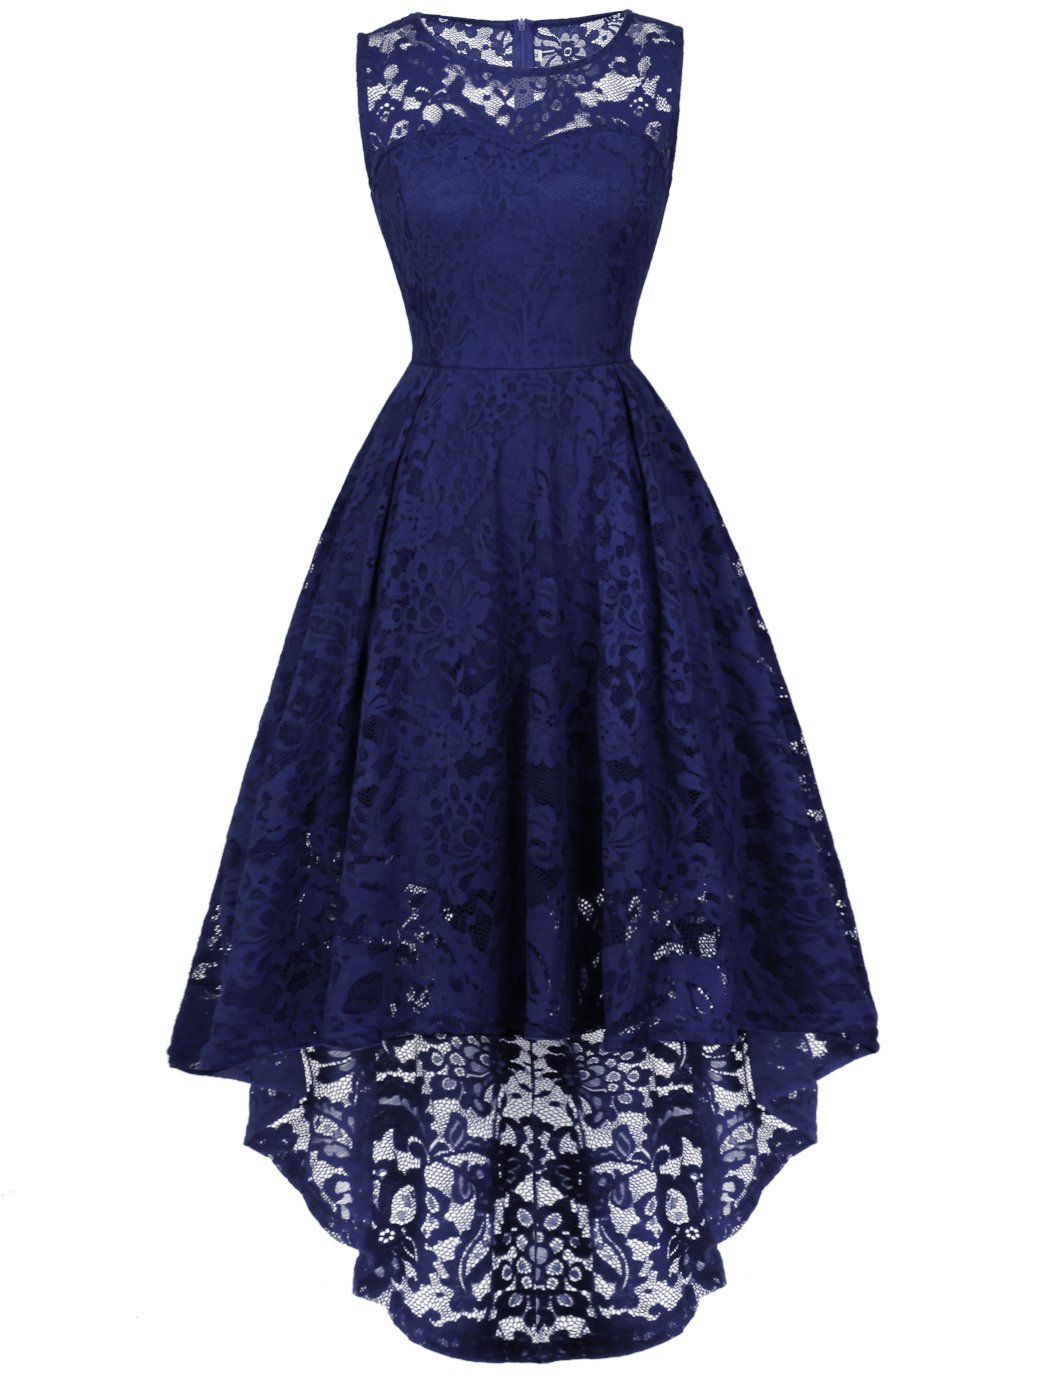 FAIRY COUPLE Woman's Hi-Low Sleeveless Vintage Wedding Party Cocktail Dress DL022(M,Navy Blue)